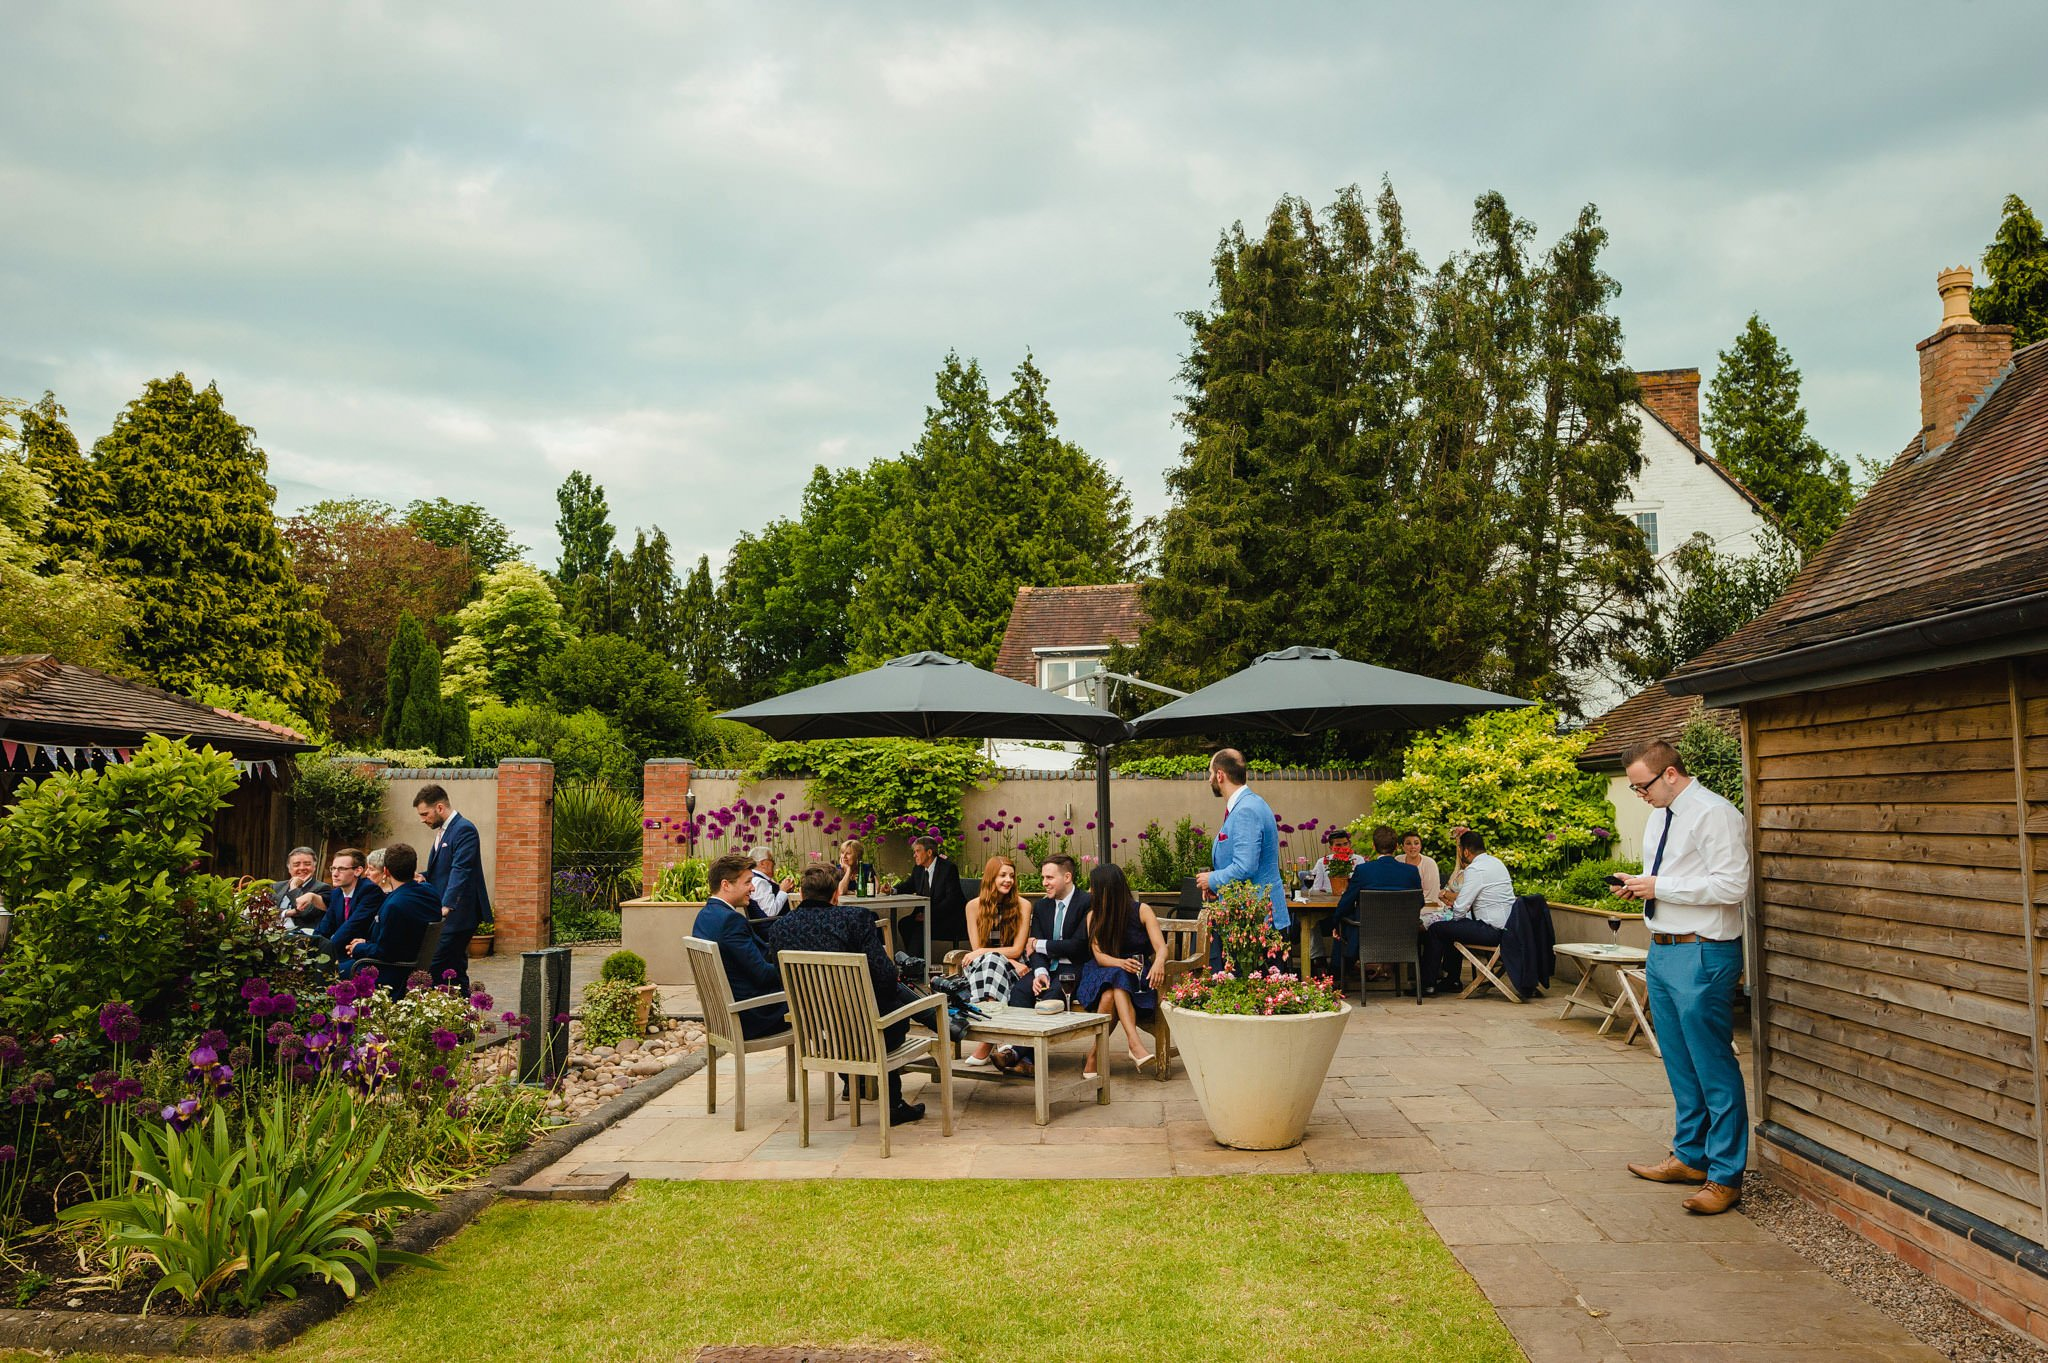 Wedding at Redhouse Barn in Stoke Prior, Worcestershire 154